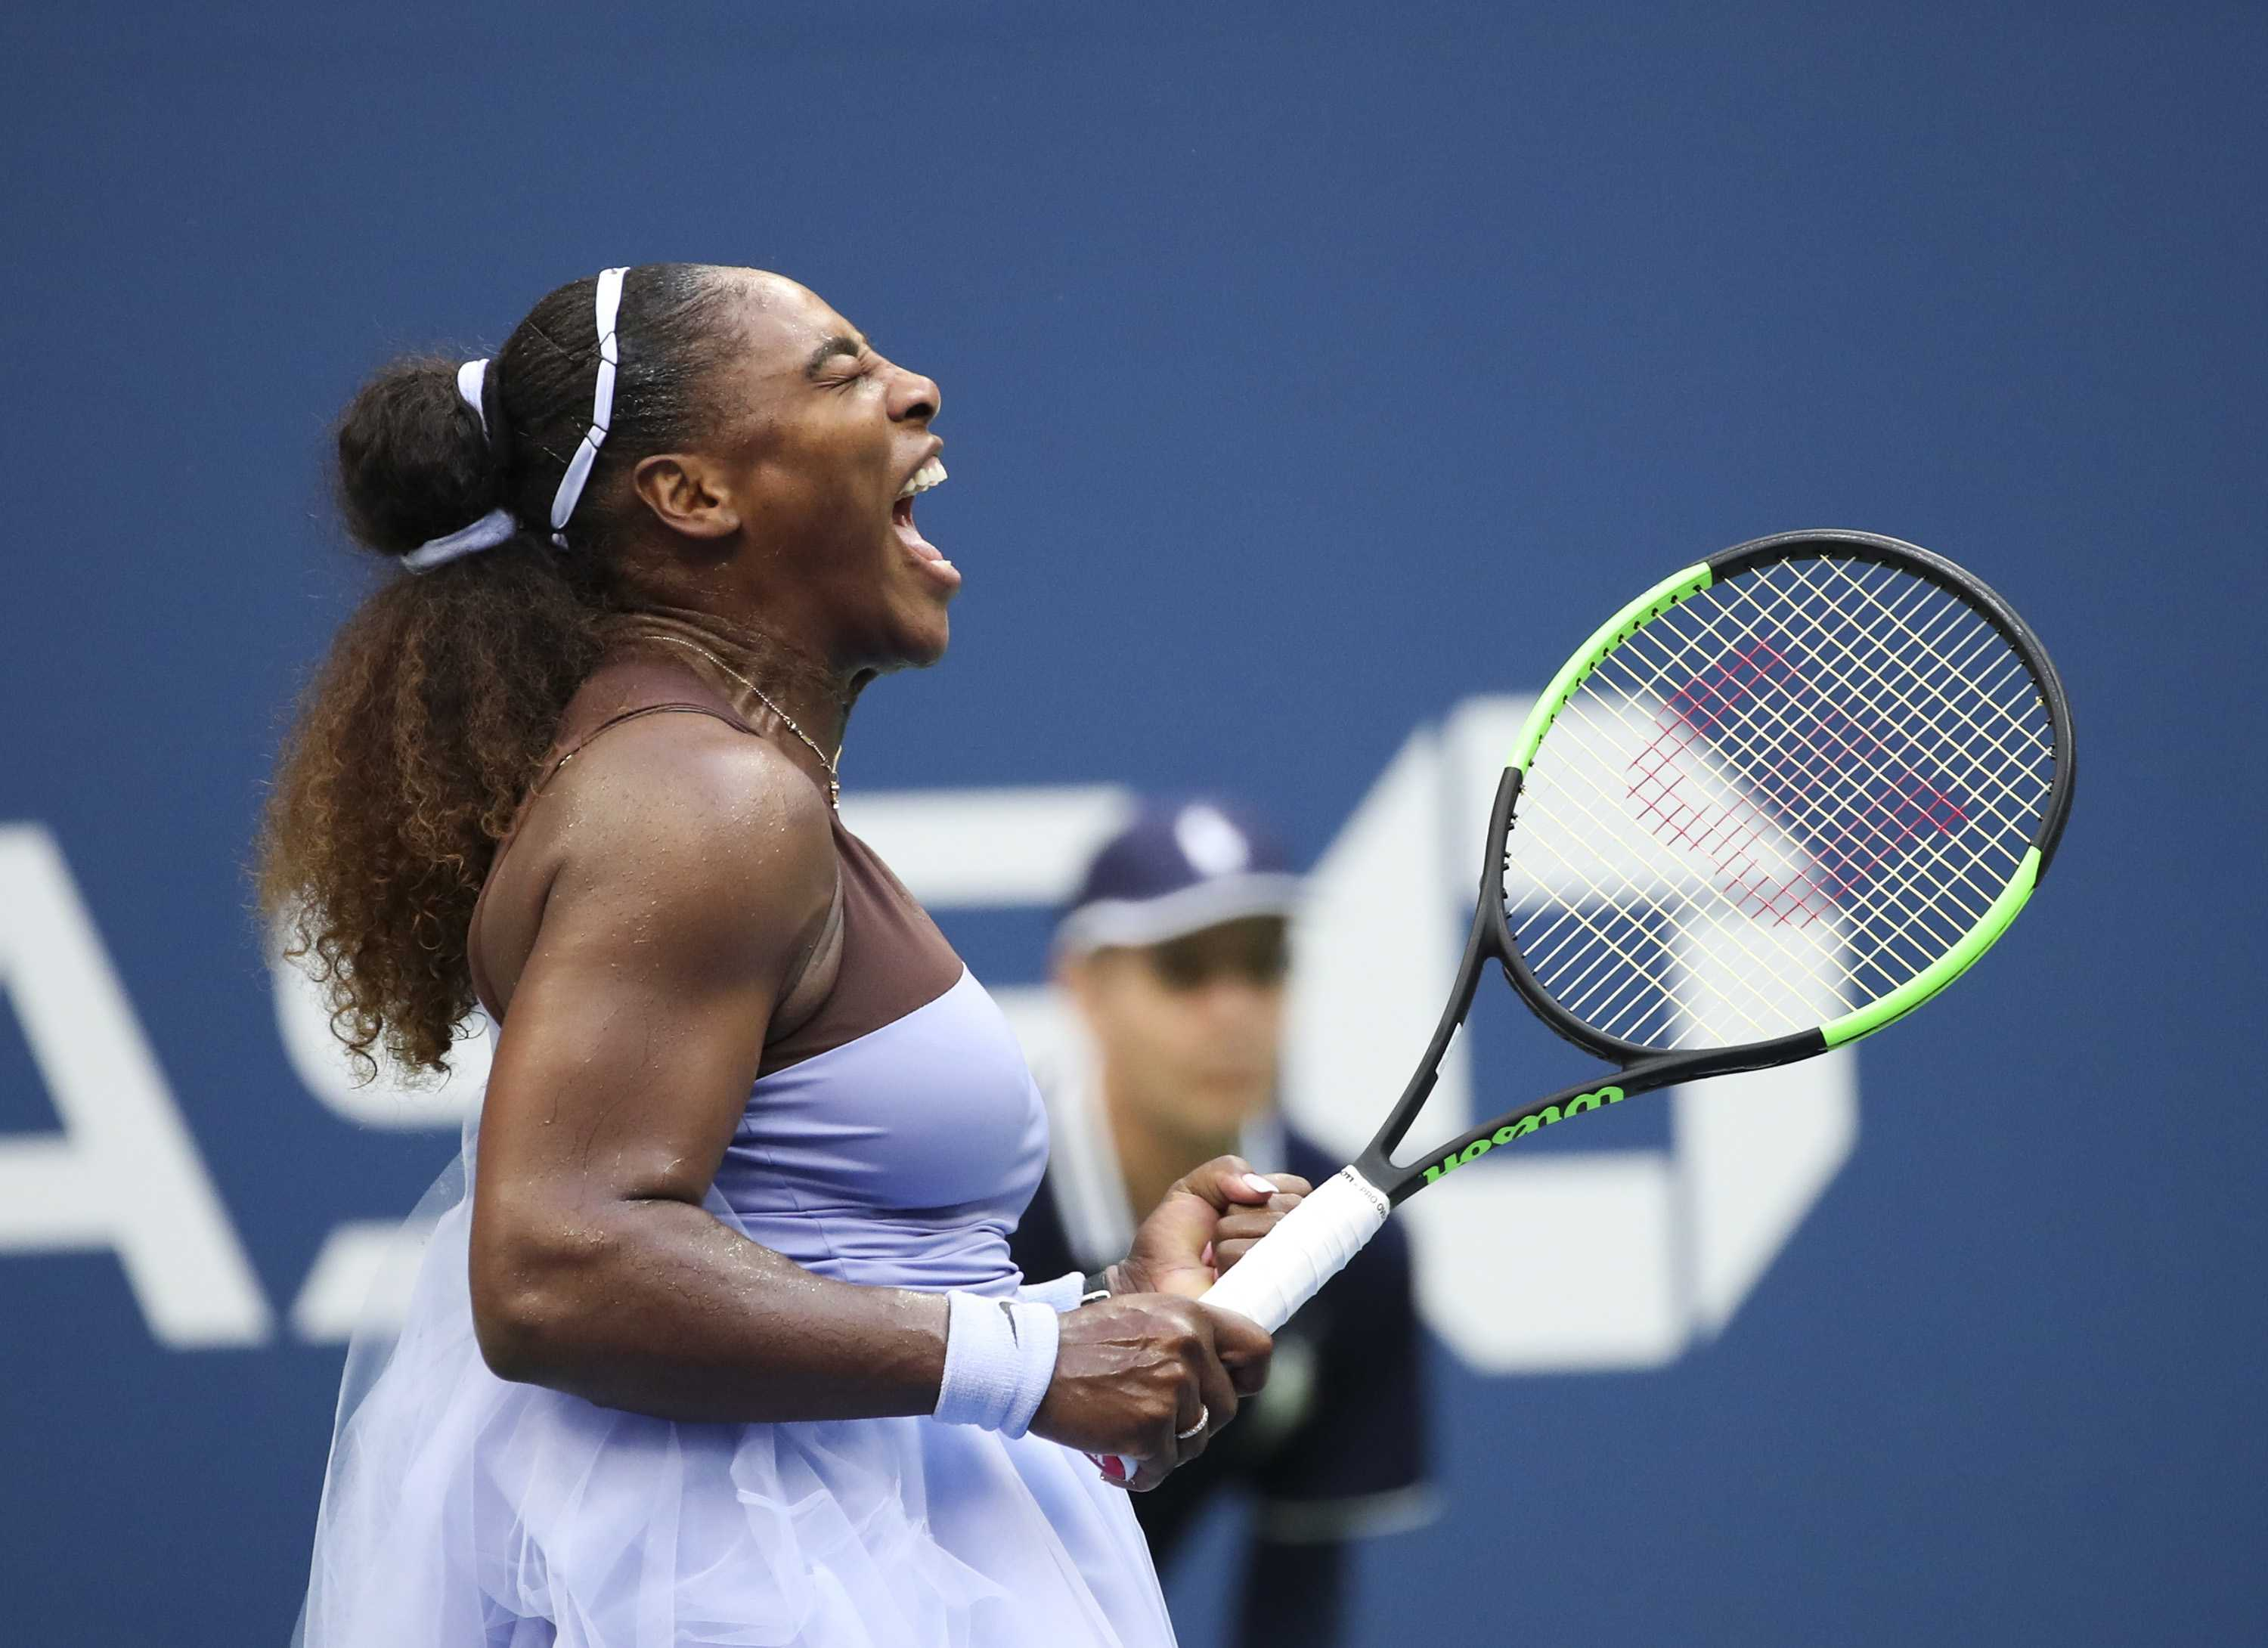 Serena Williams celebrates during her women's singles fourth round victory against K. Kanepi at the 2018 U.S. Open on Sunday, Sept. 2, in Flushing Meadows, N.Y. Williams won 2-1. (Xinhua/Zuma Press/TNS)